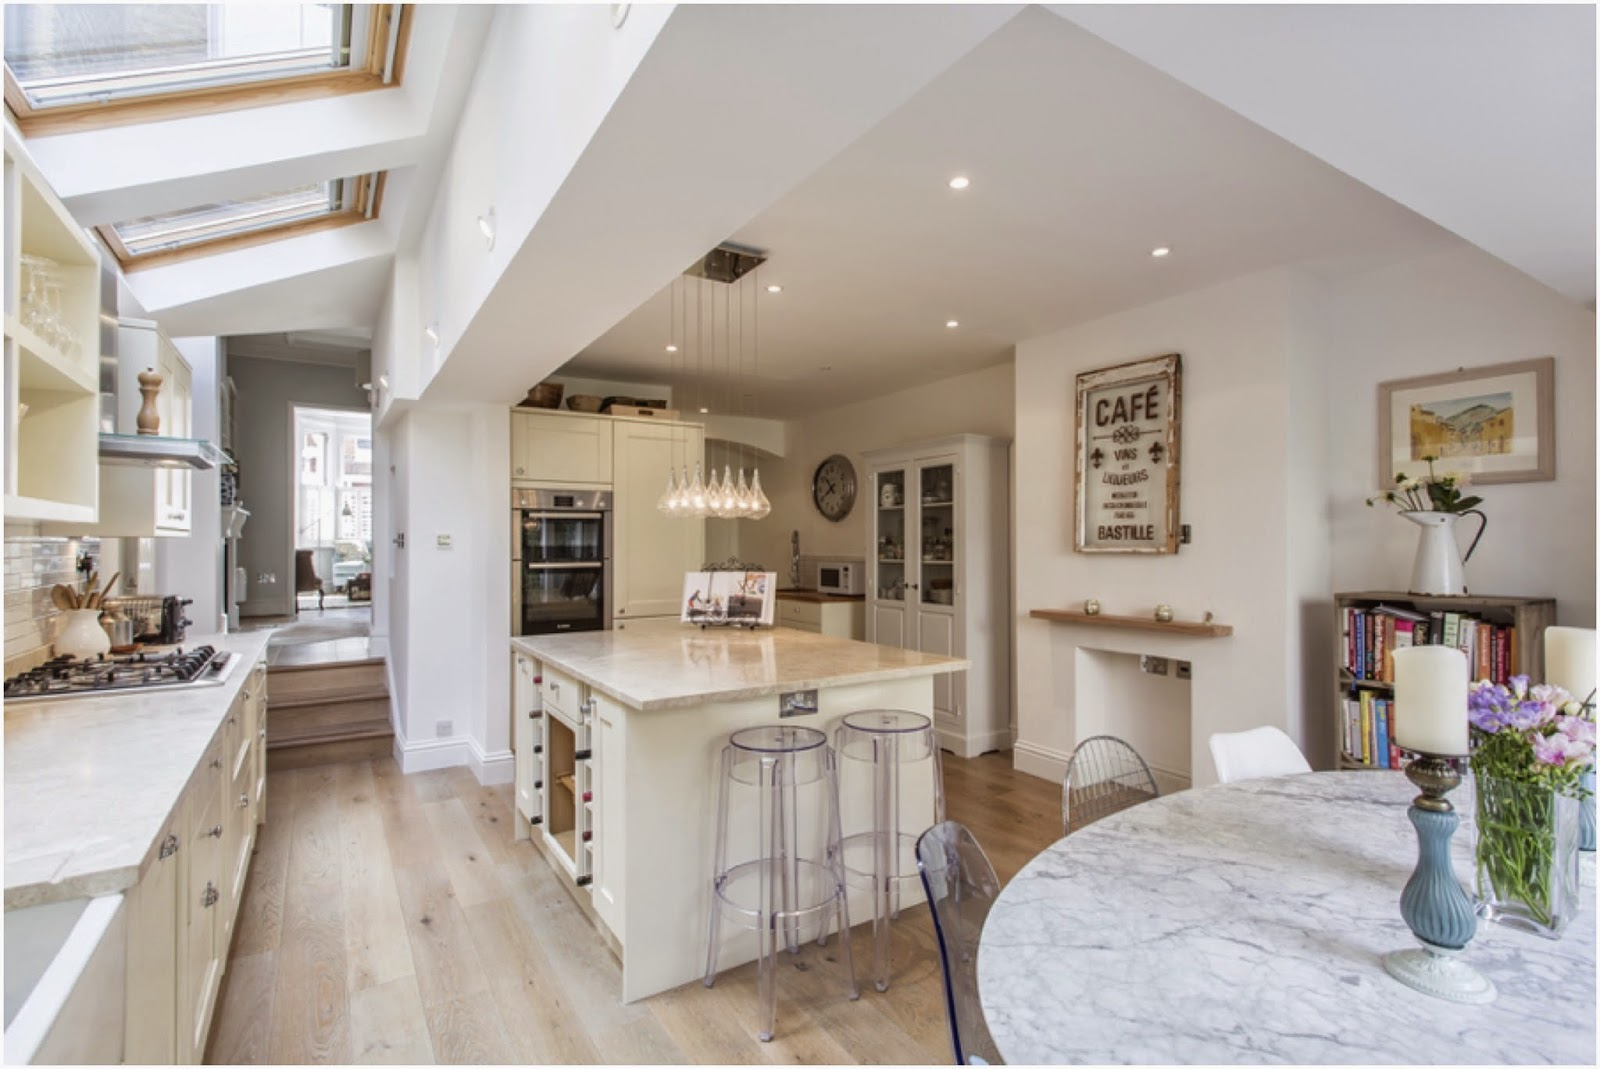 Kitchen in South West London